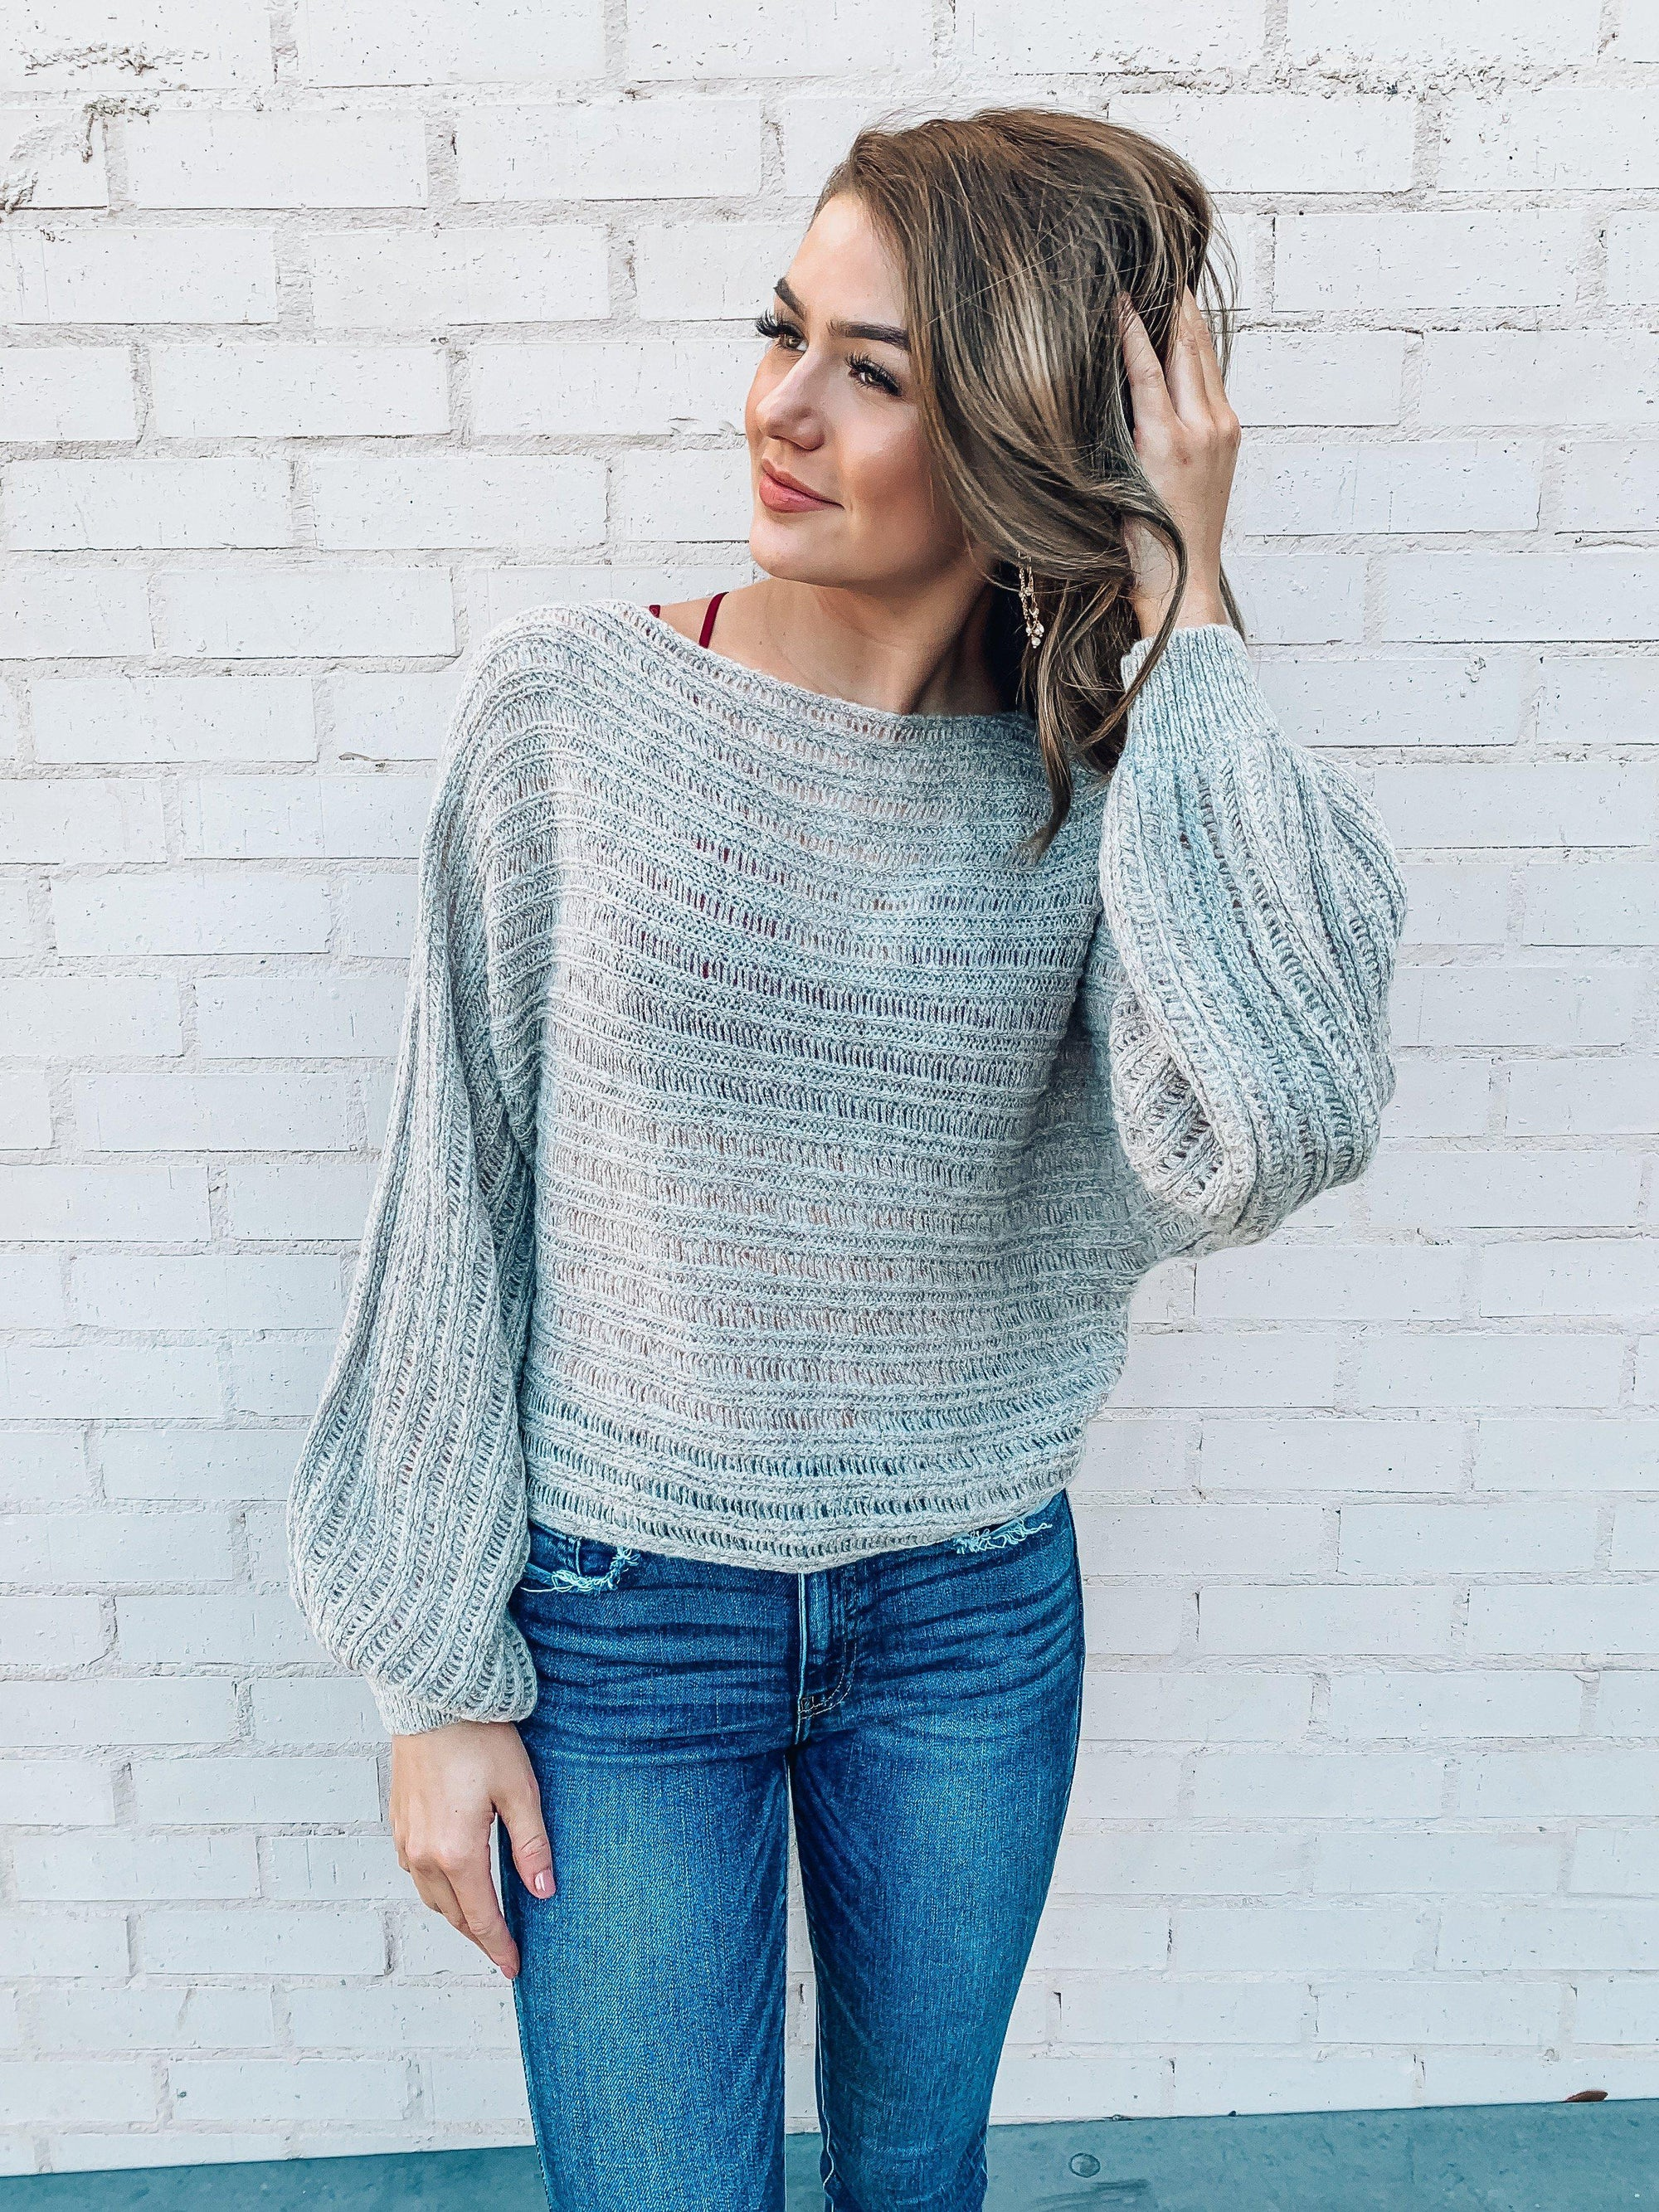 Warm & Cozy Top-Women's TOP-New Arrivals-Runway Seven - Women's Clothing Boutique